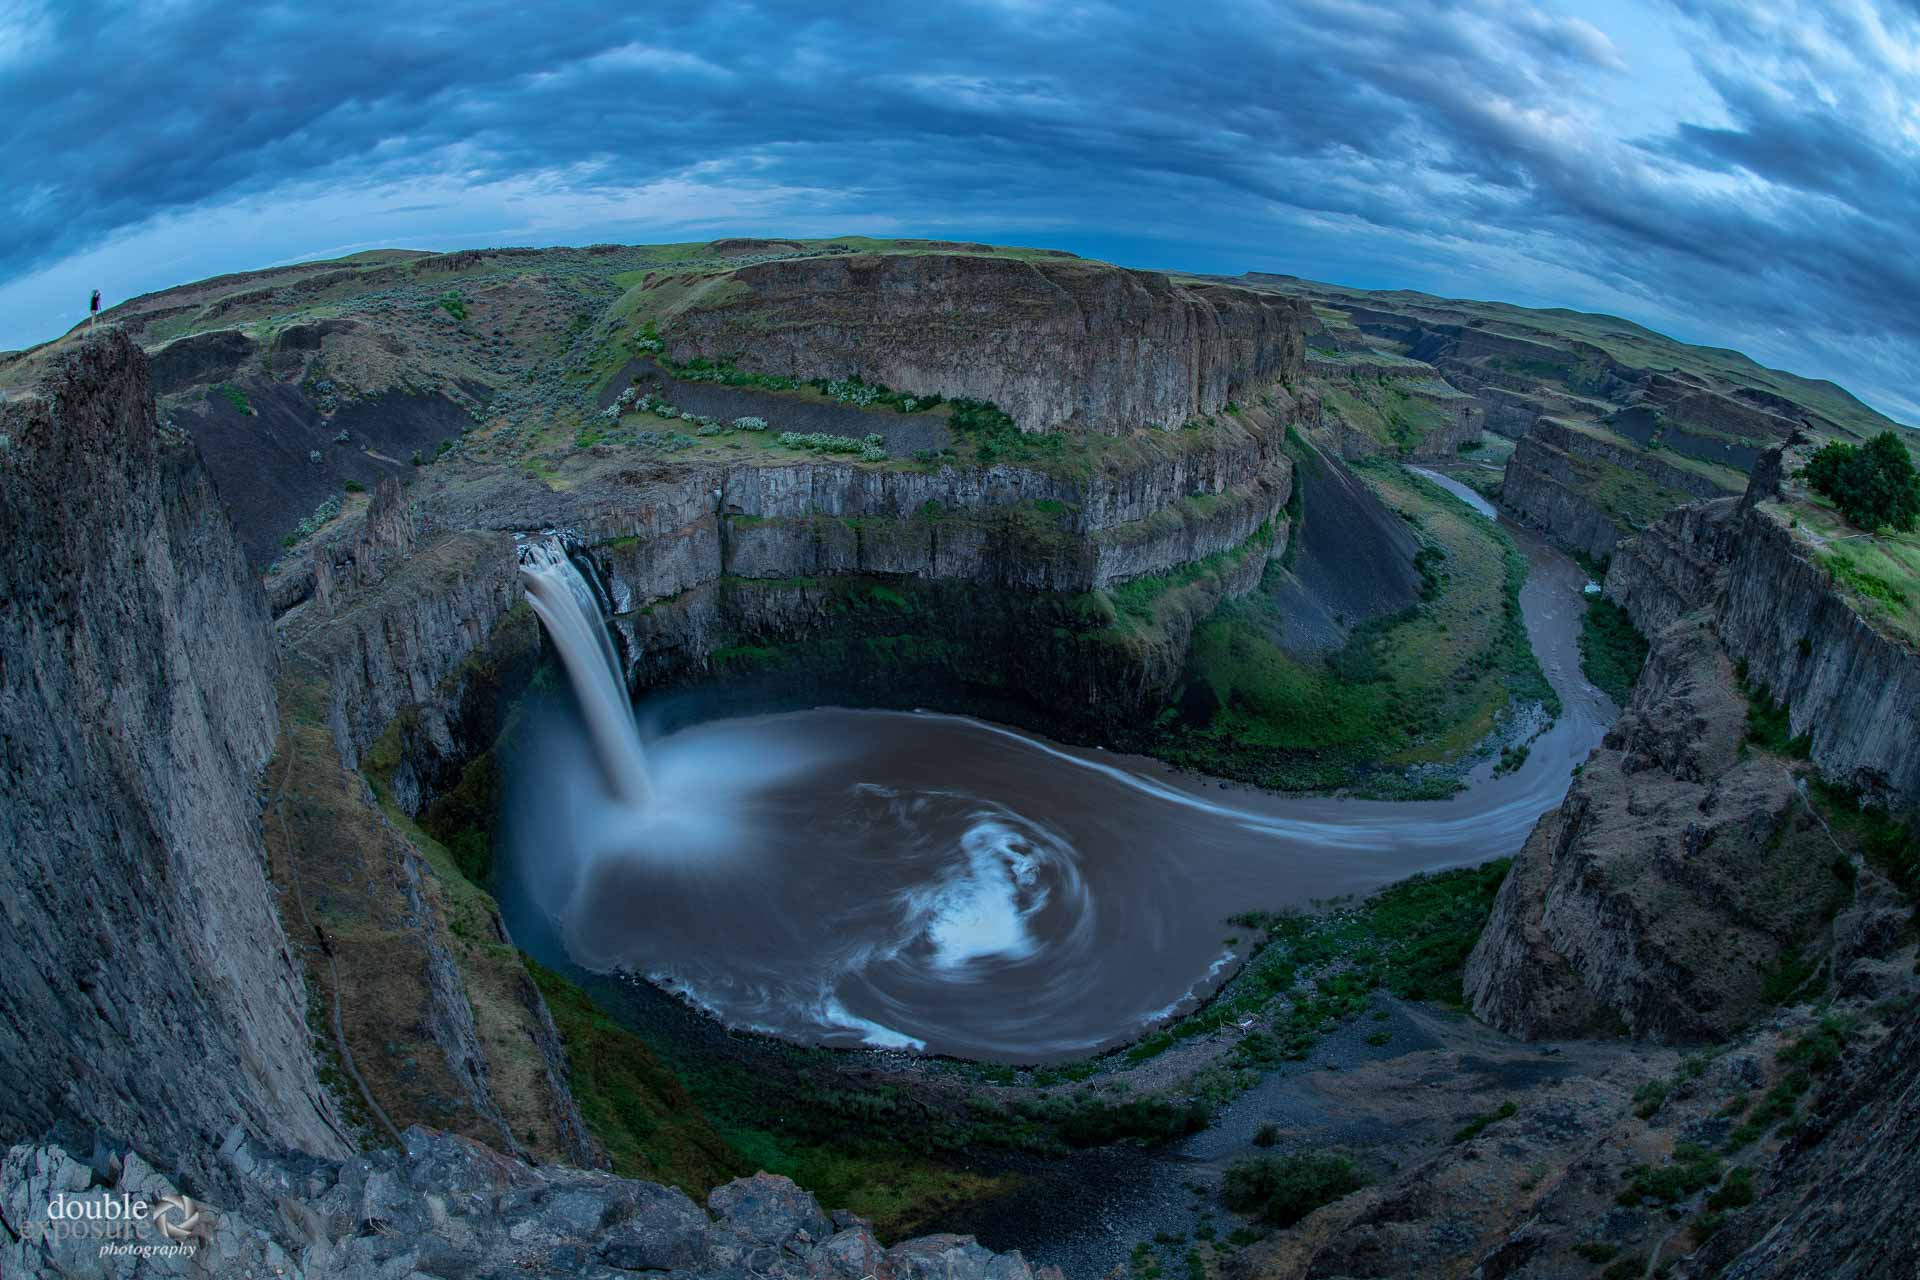 Palouse waterfalls with brown water